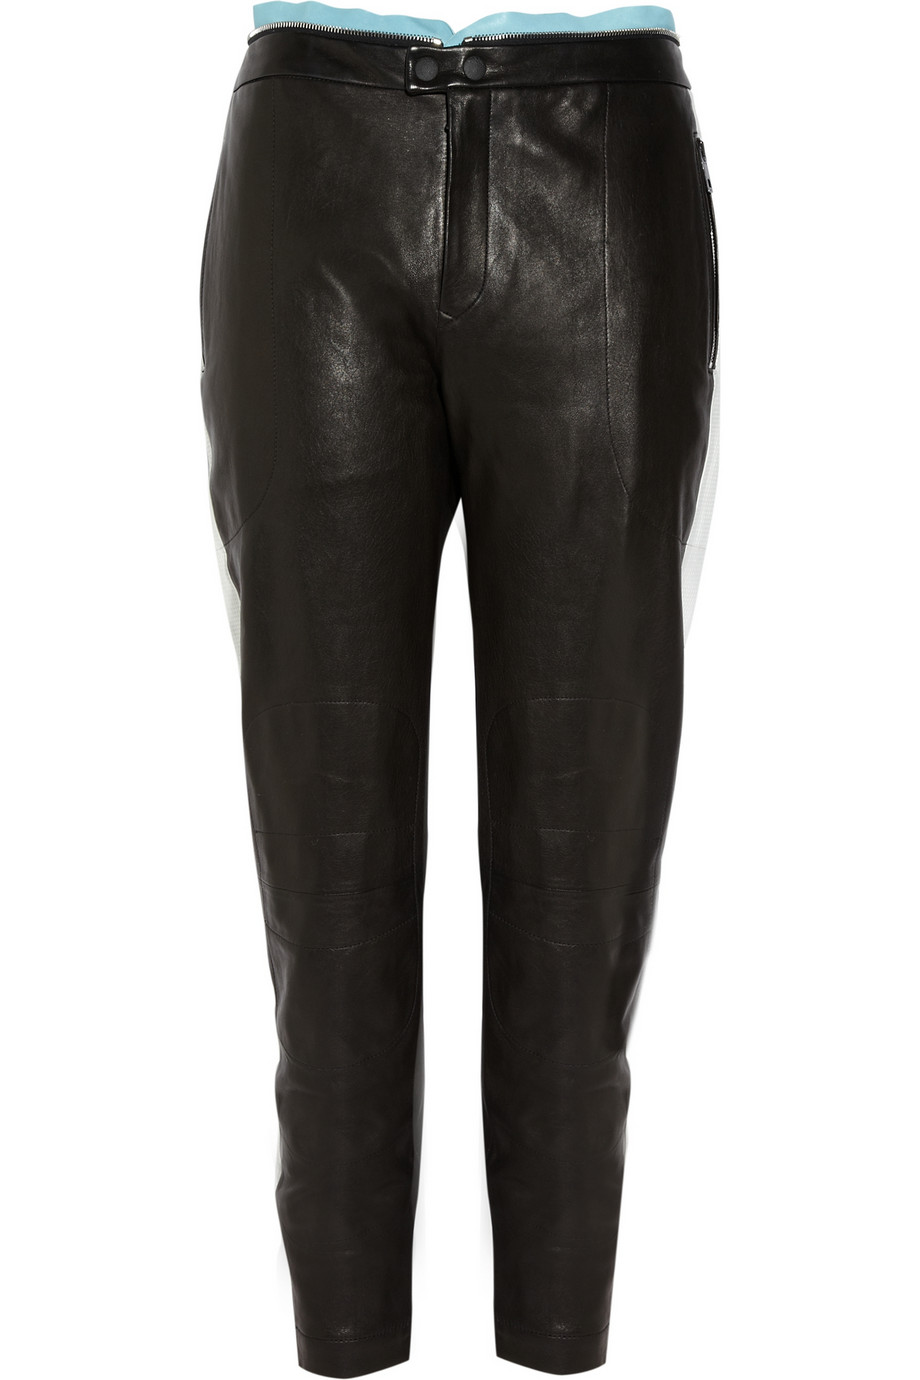 Dakar perforated leather pants | Rag & bone | THE OUTNET